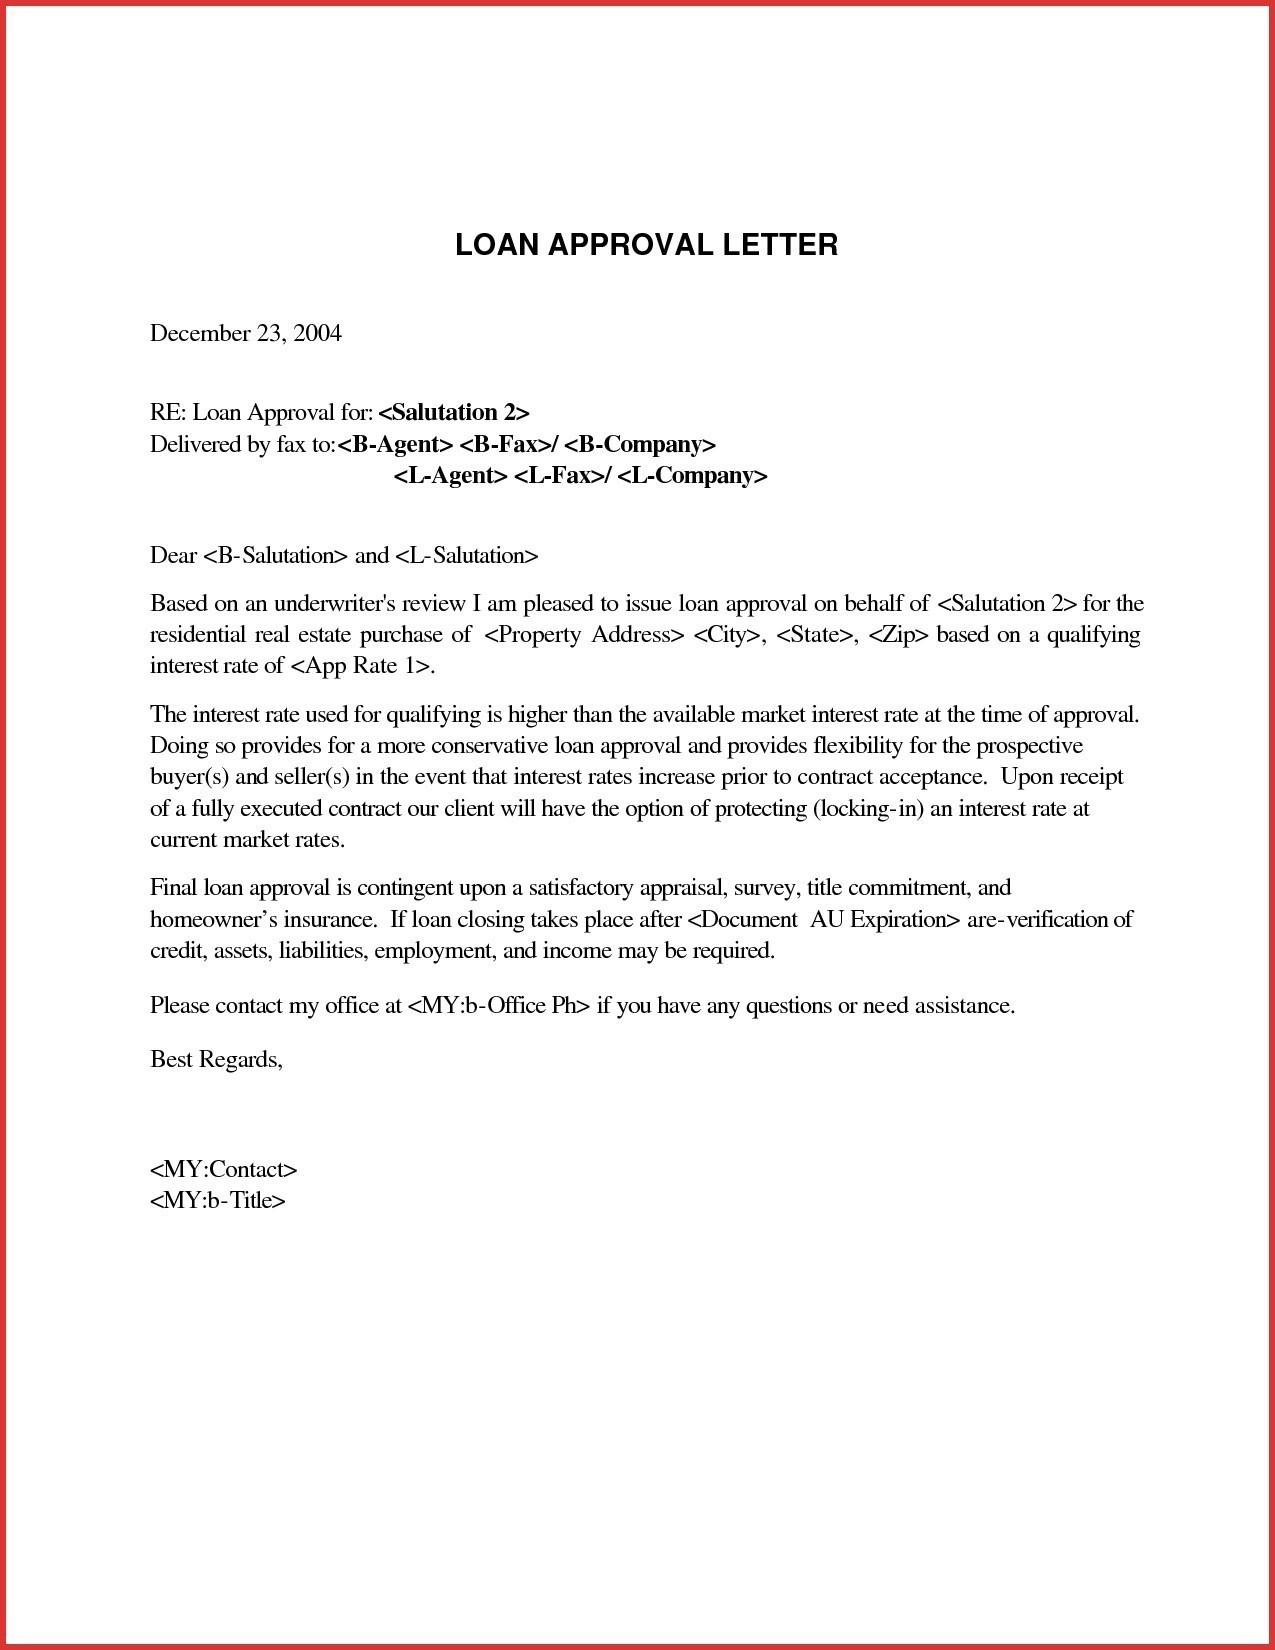 Mortgage Loan Approval Letter Template - Letter format for Loan Request From Employer New Loan Request Letter